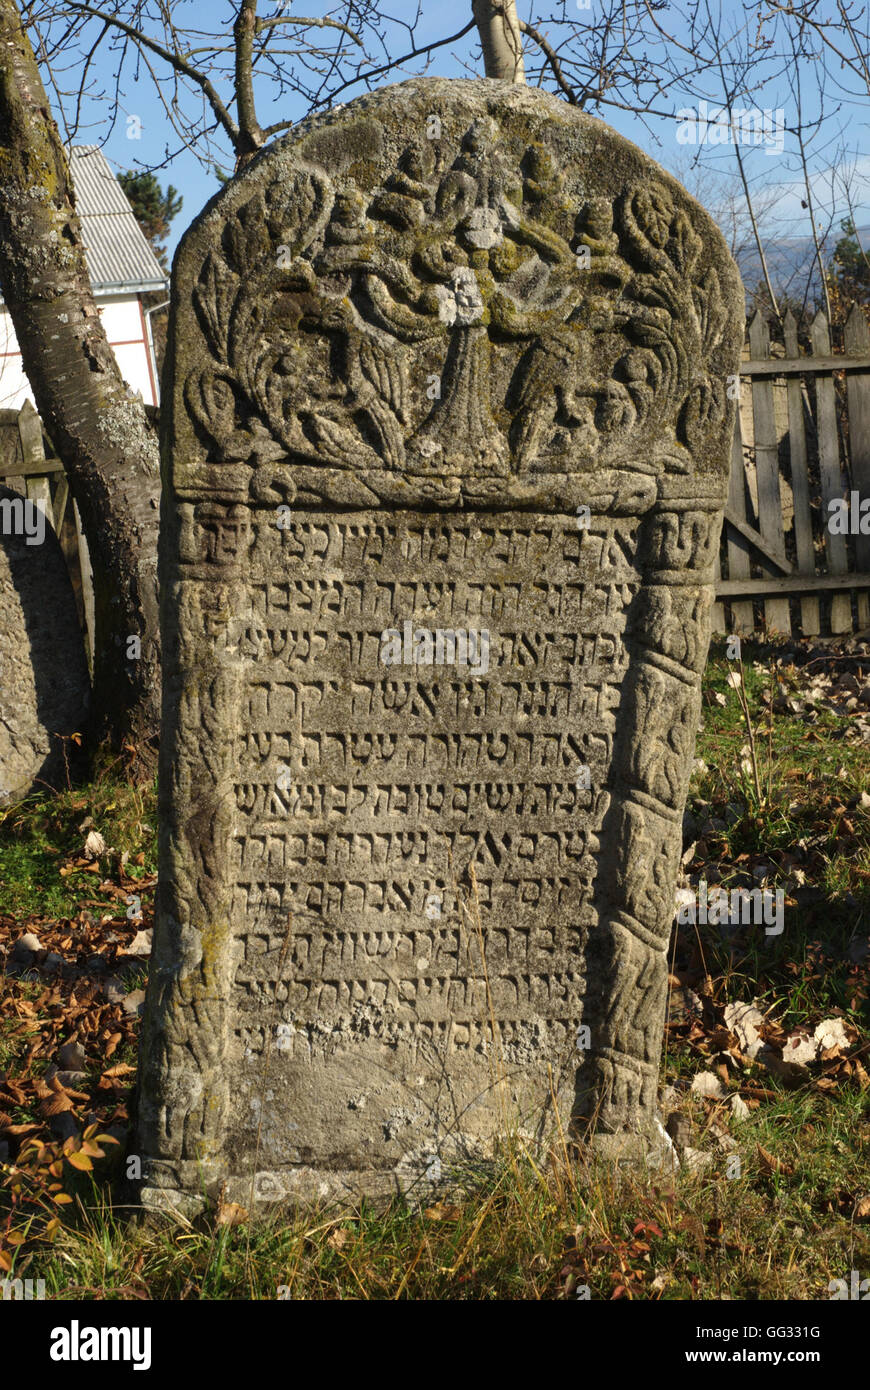 5512---Vatra Dornei, Romania. Tombstone from the ancient graveyard, dating 18-19th C. - Stock Image